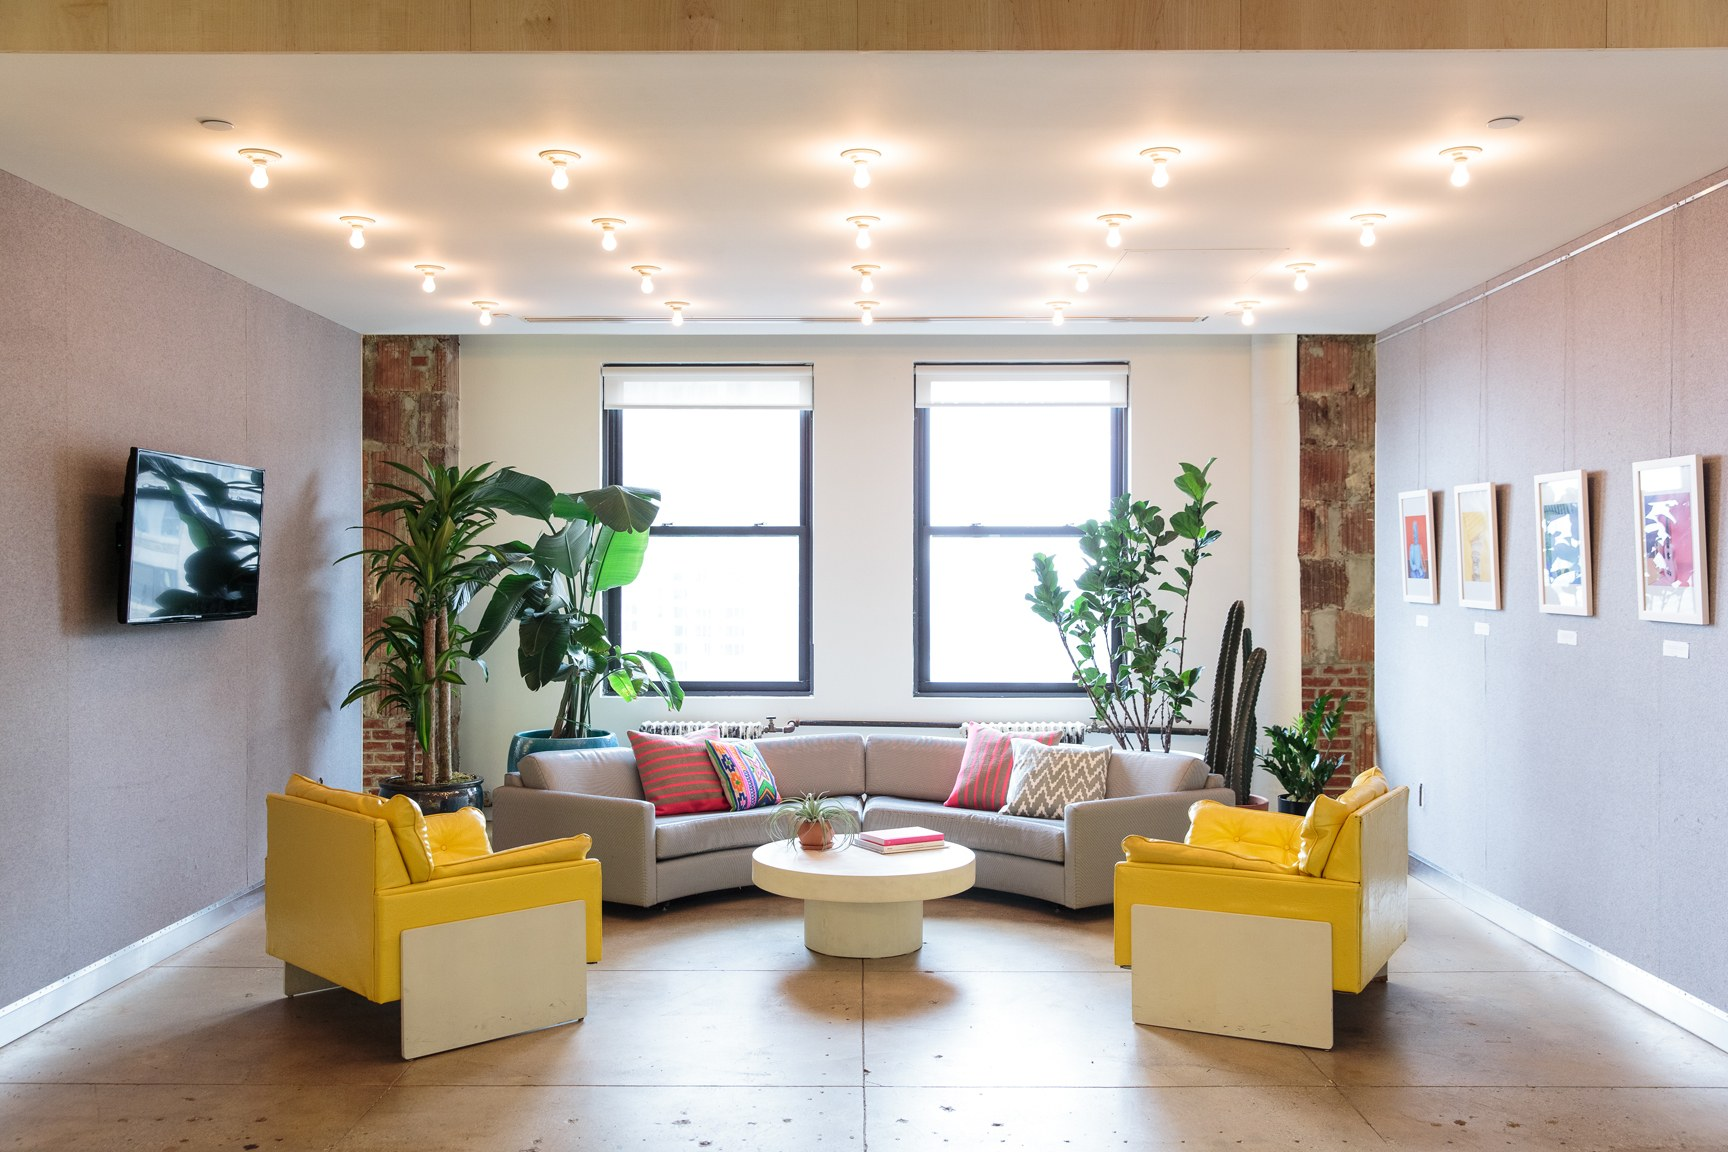 Designer Office Spaces In New York And San Francisco  Photos Architectural Digest_architecture Office Spaces_architecture_architectural Design Magazine   ...